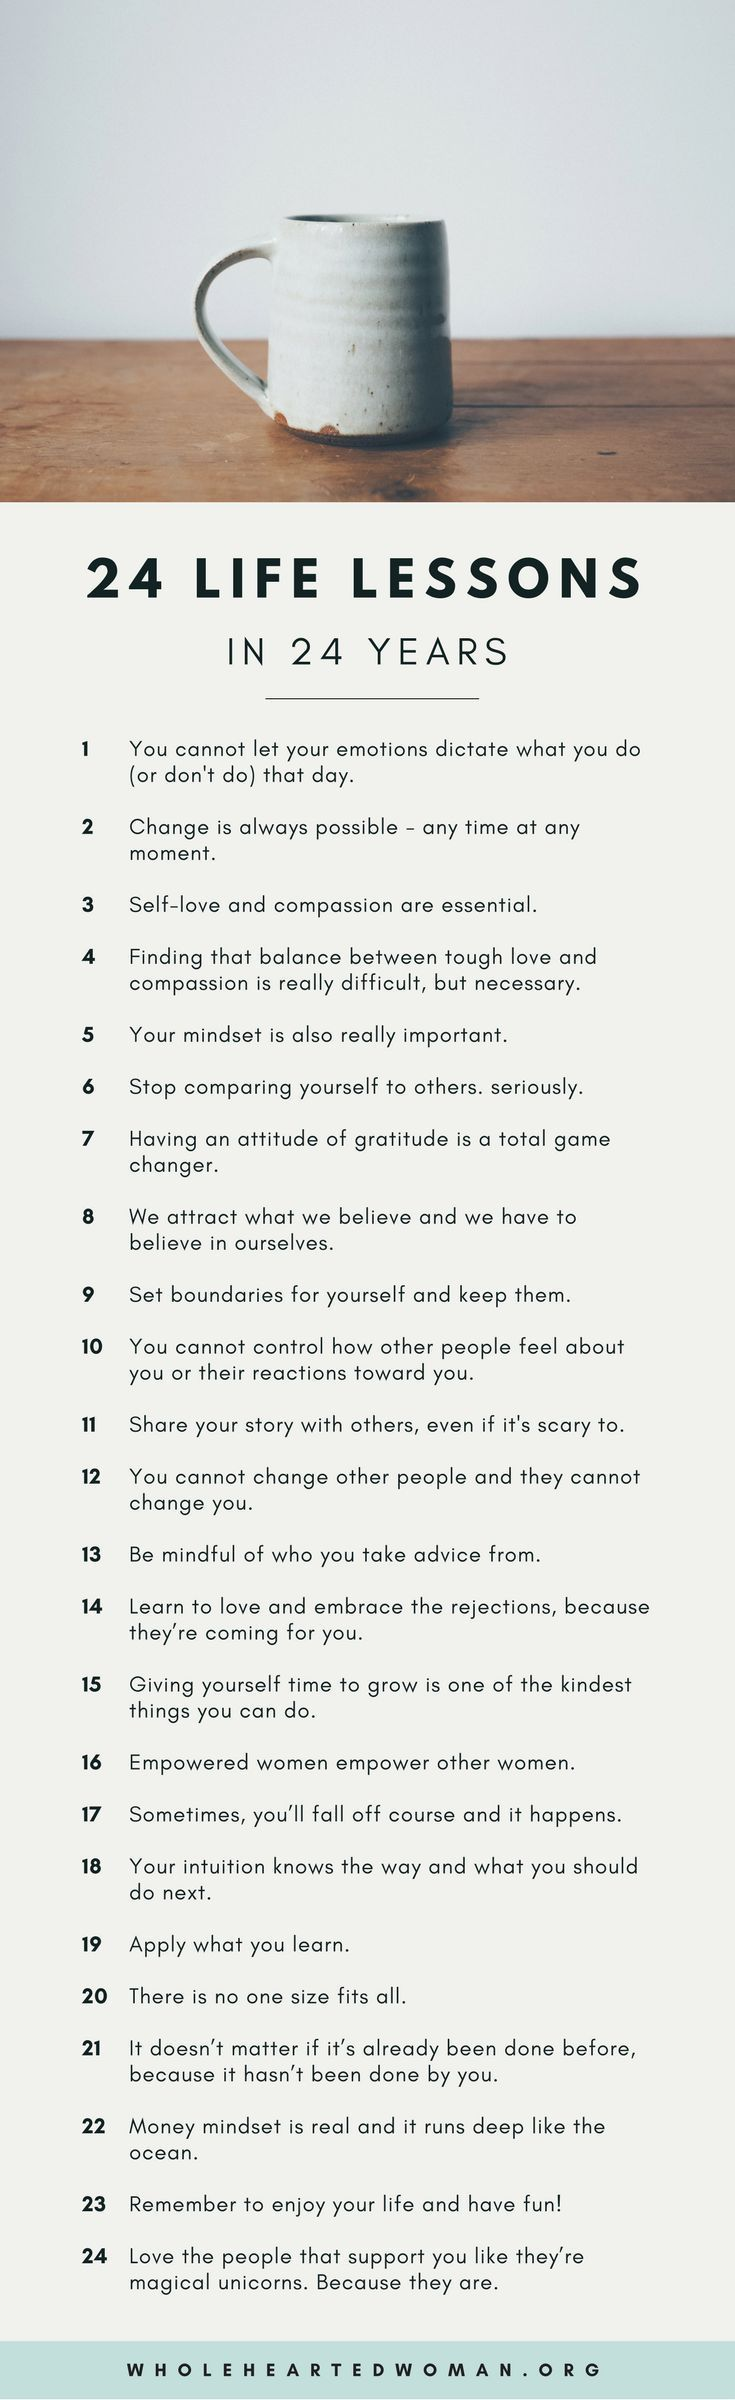 Ten Tips to Change the Course of Your LIfe